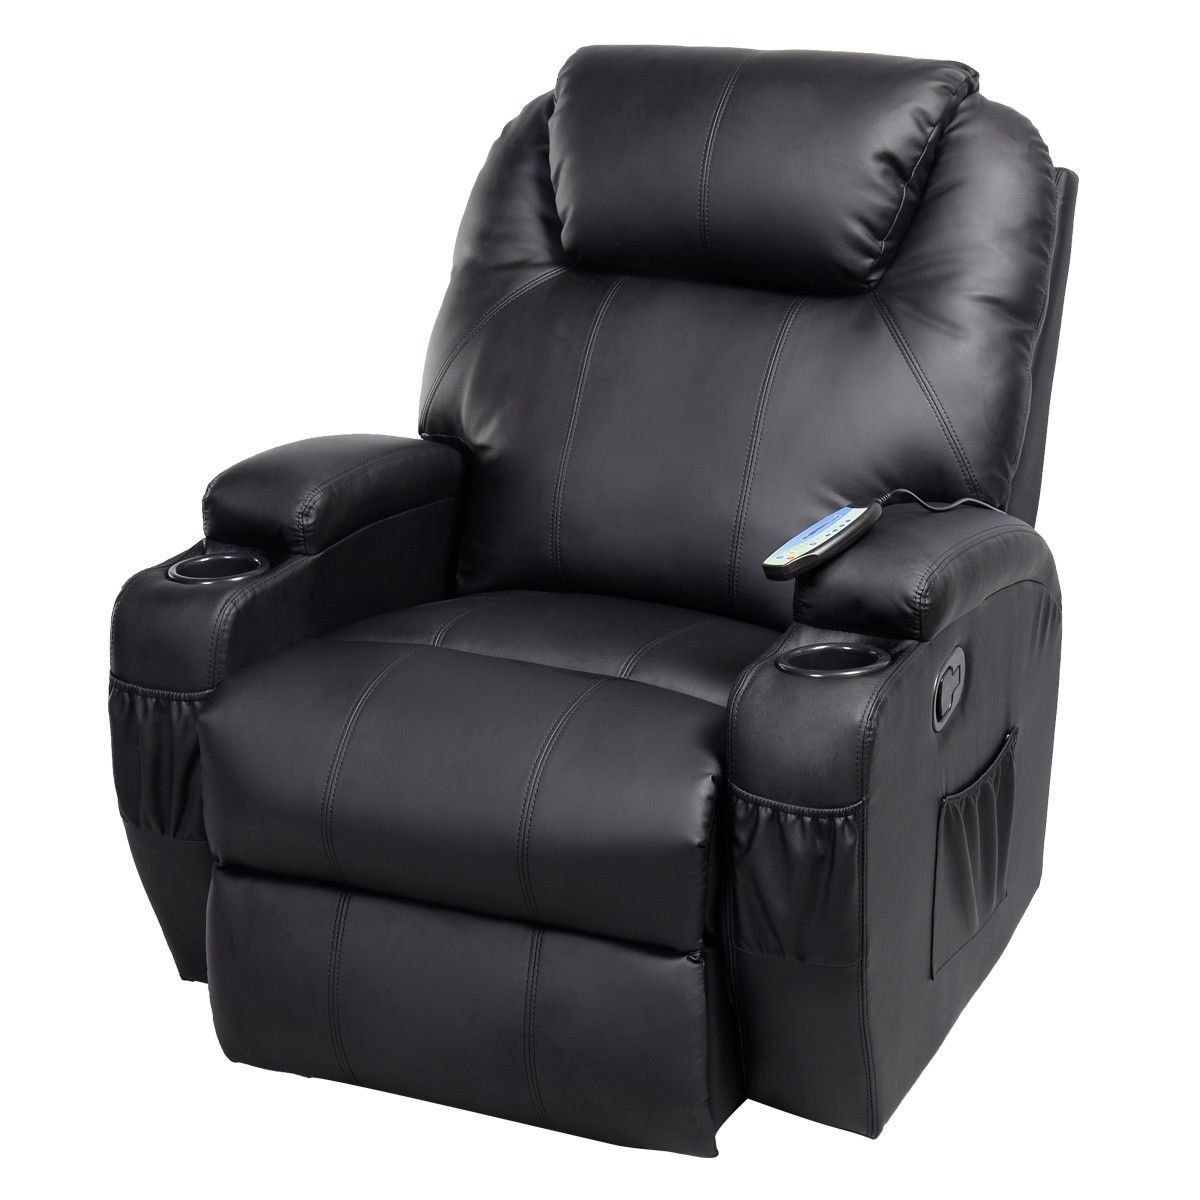 Rocking Sofa Chairs Pertaining To Current Amazon: Ghp Black Sturdy Ergonomic Seating Massage Recliner (View 11 of 15)